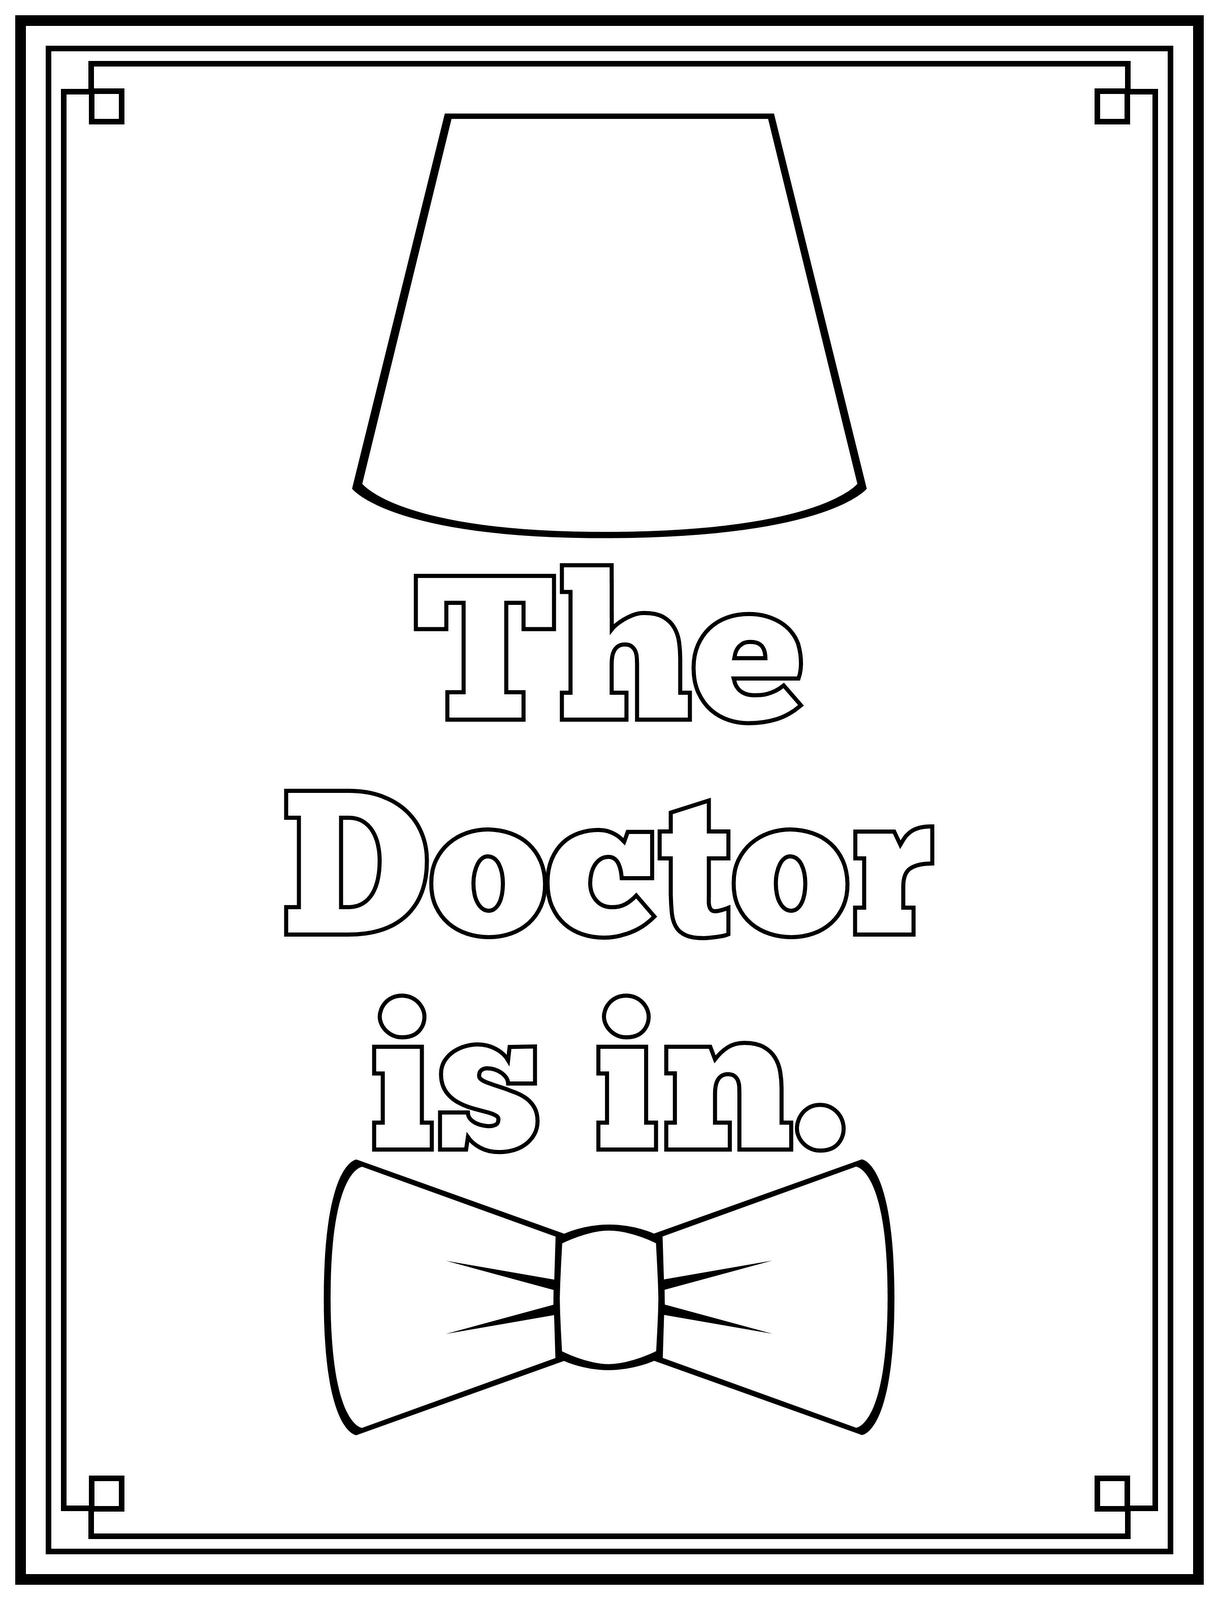 doctor who tardis coloring pages doverpublications books for education coloring chocolate bar doctor who tardis pages coloring